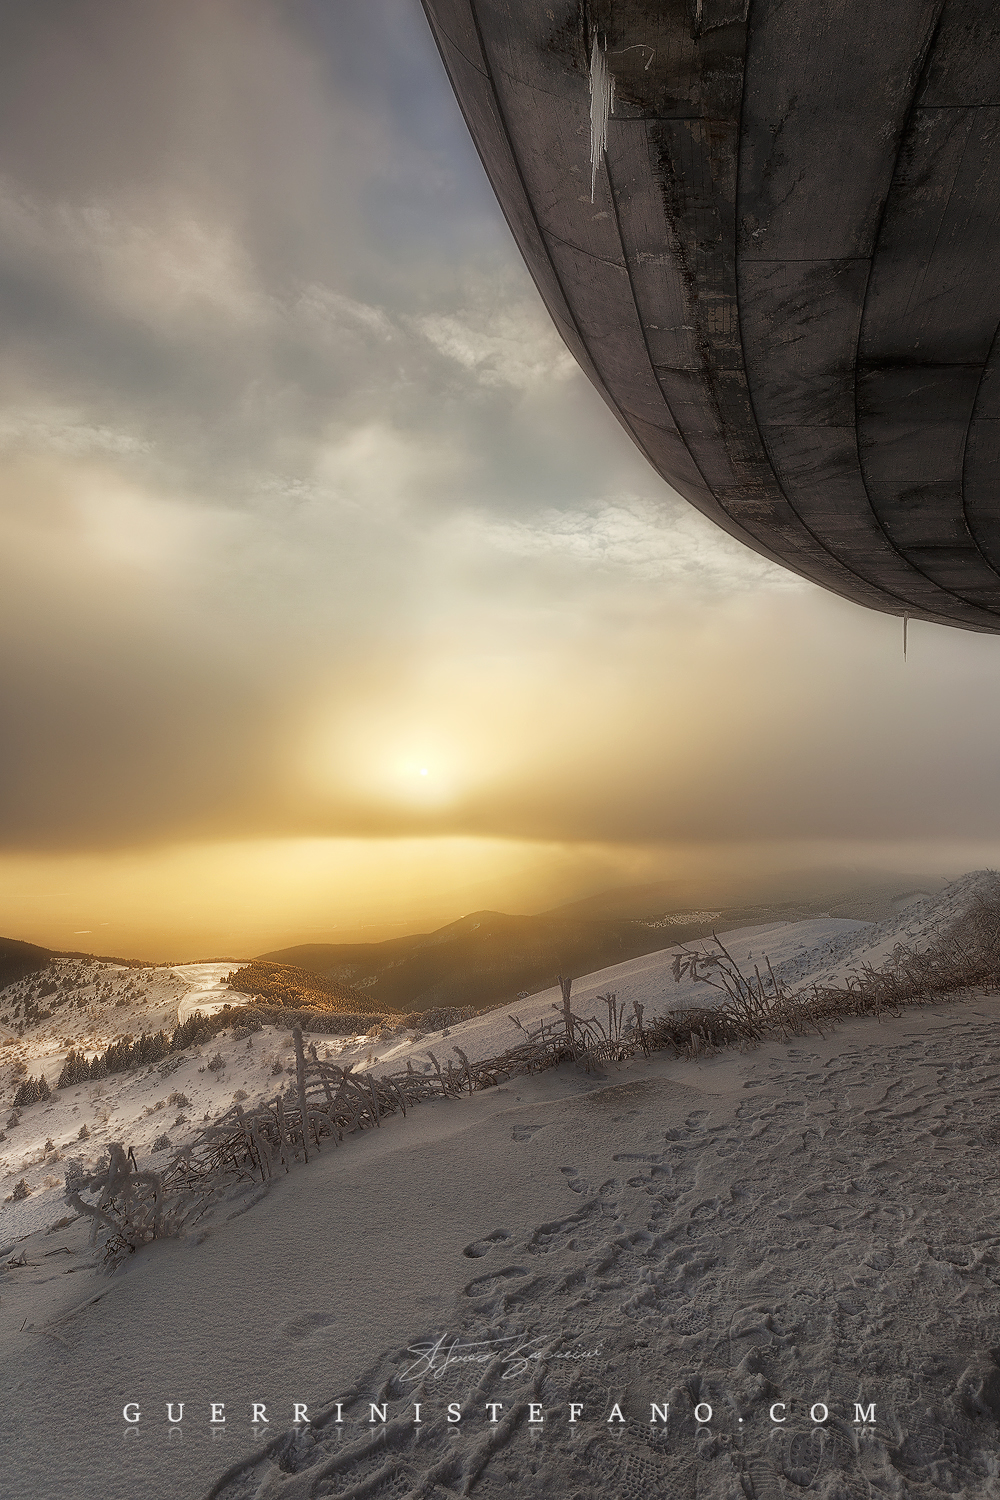 buzludzha-stunning-sunset-1000px-by-guerrini-stefano